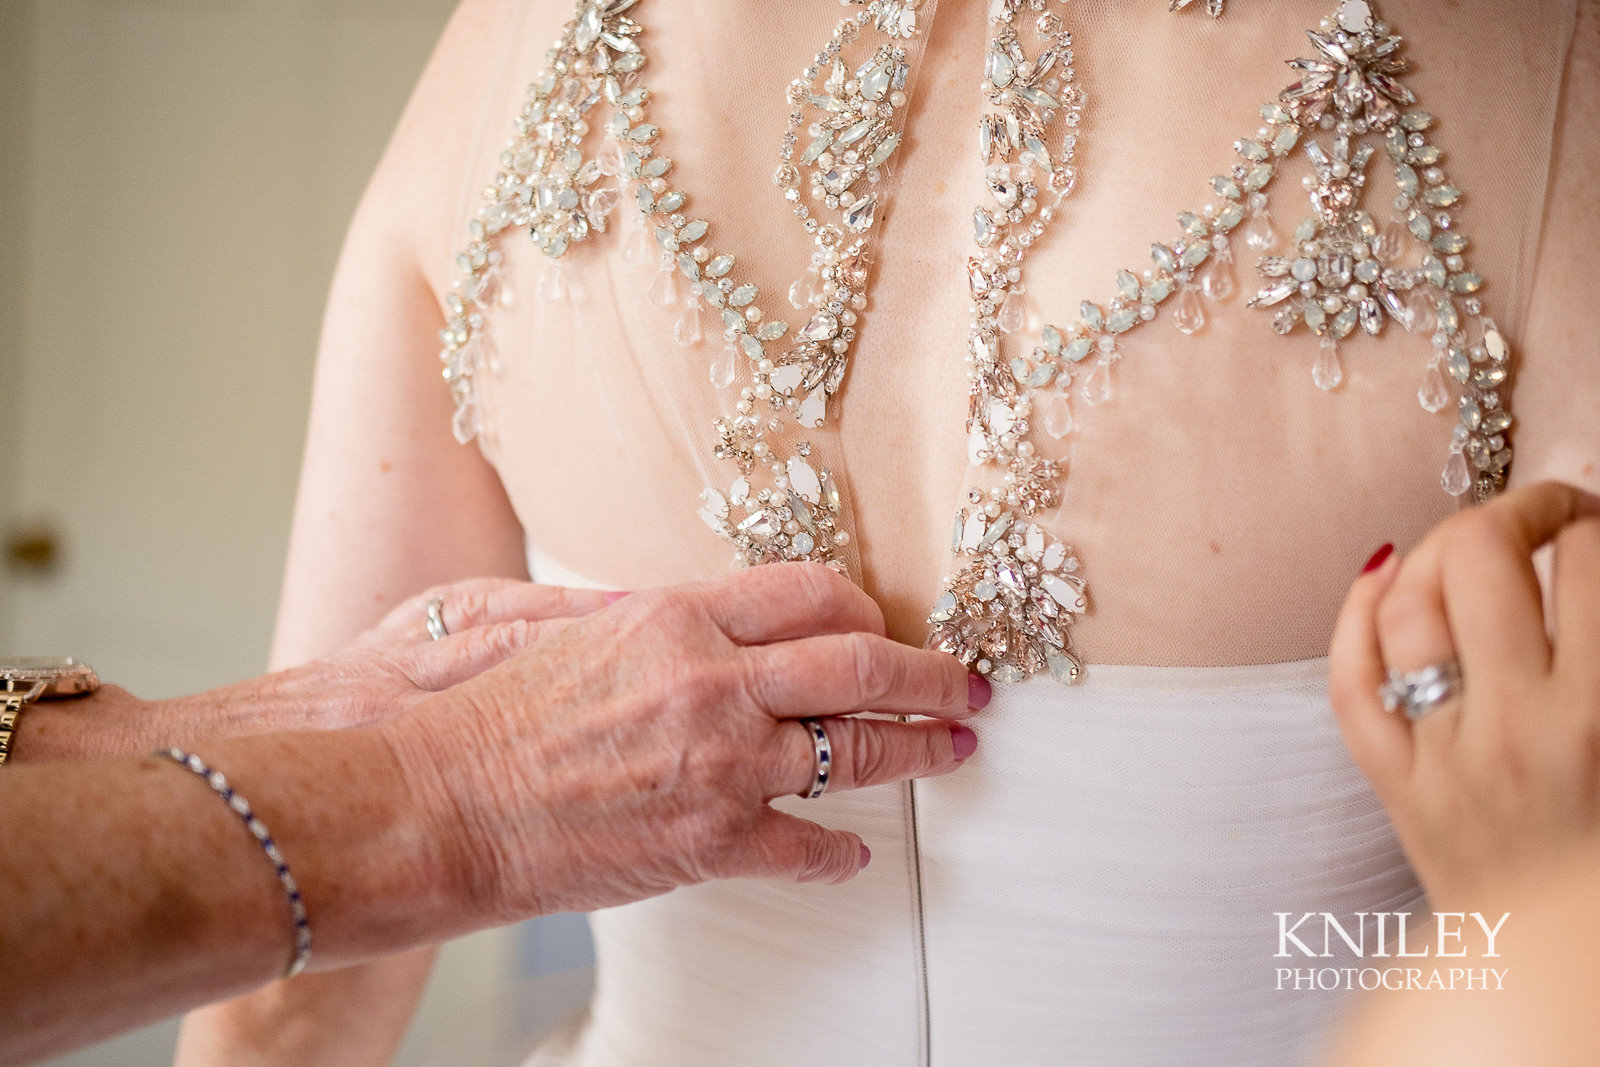 026 - Rochester NY wedding pictures - Genesee Valley Club - Ceremony and Reception - XT2B6598.jpg